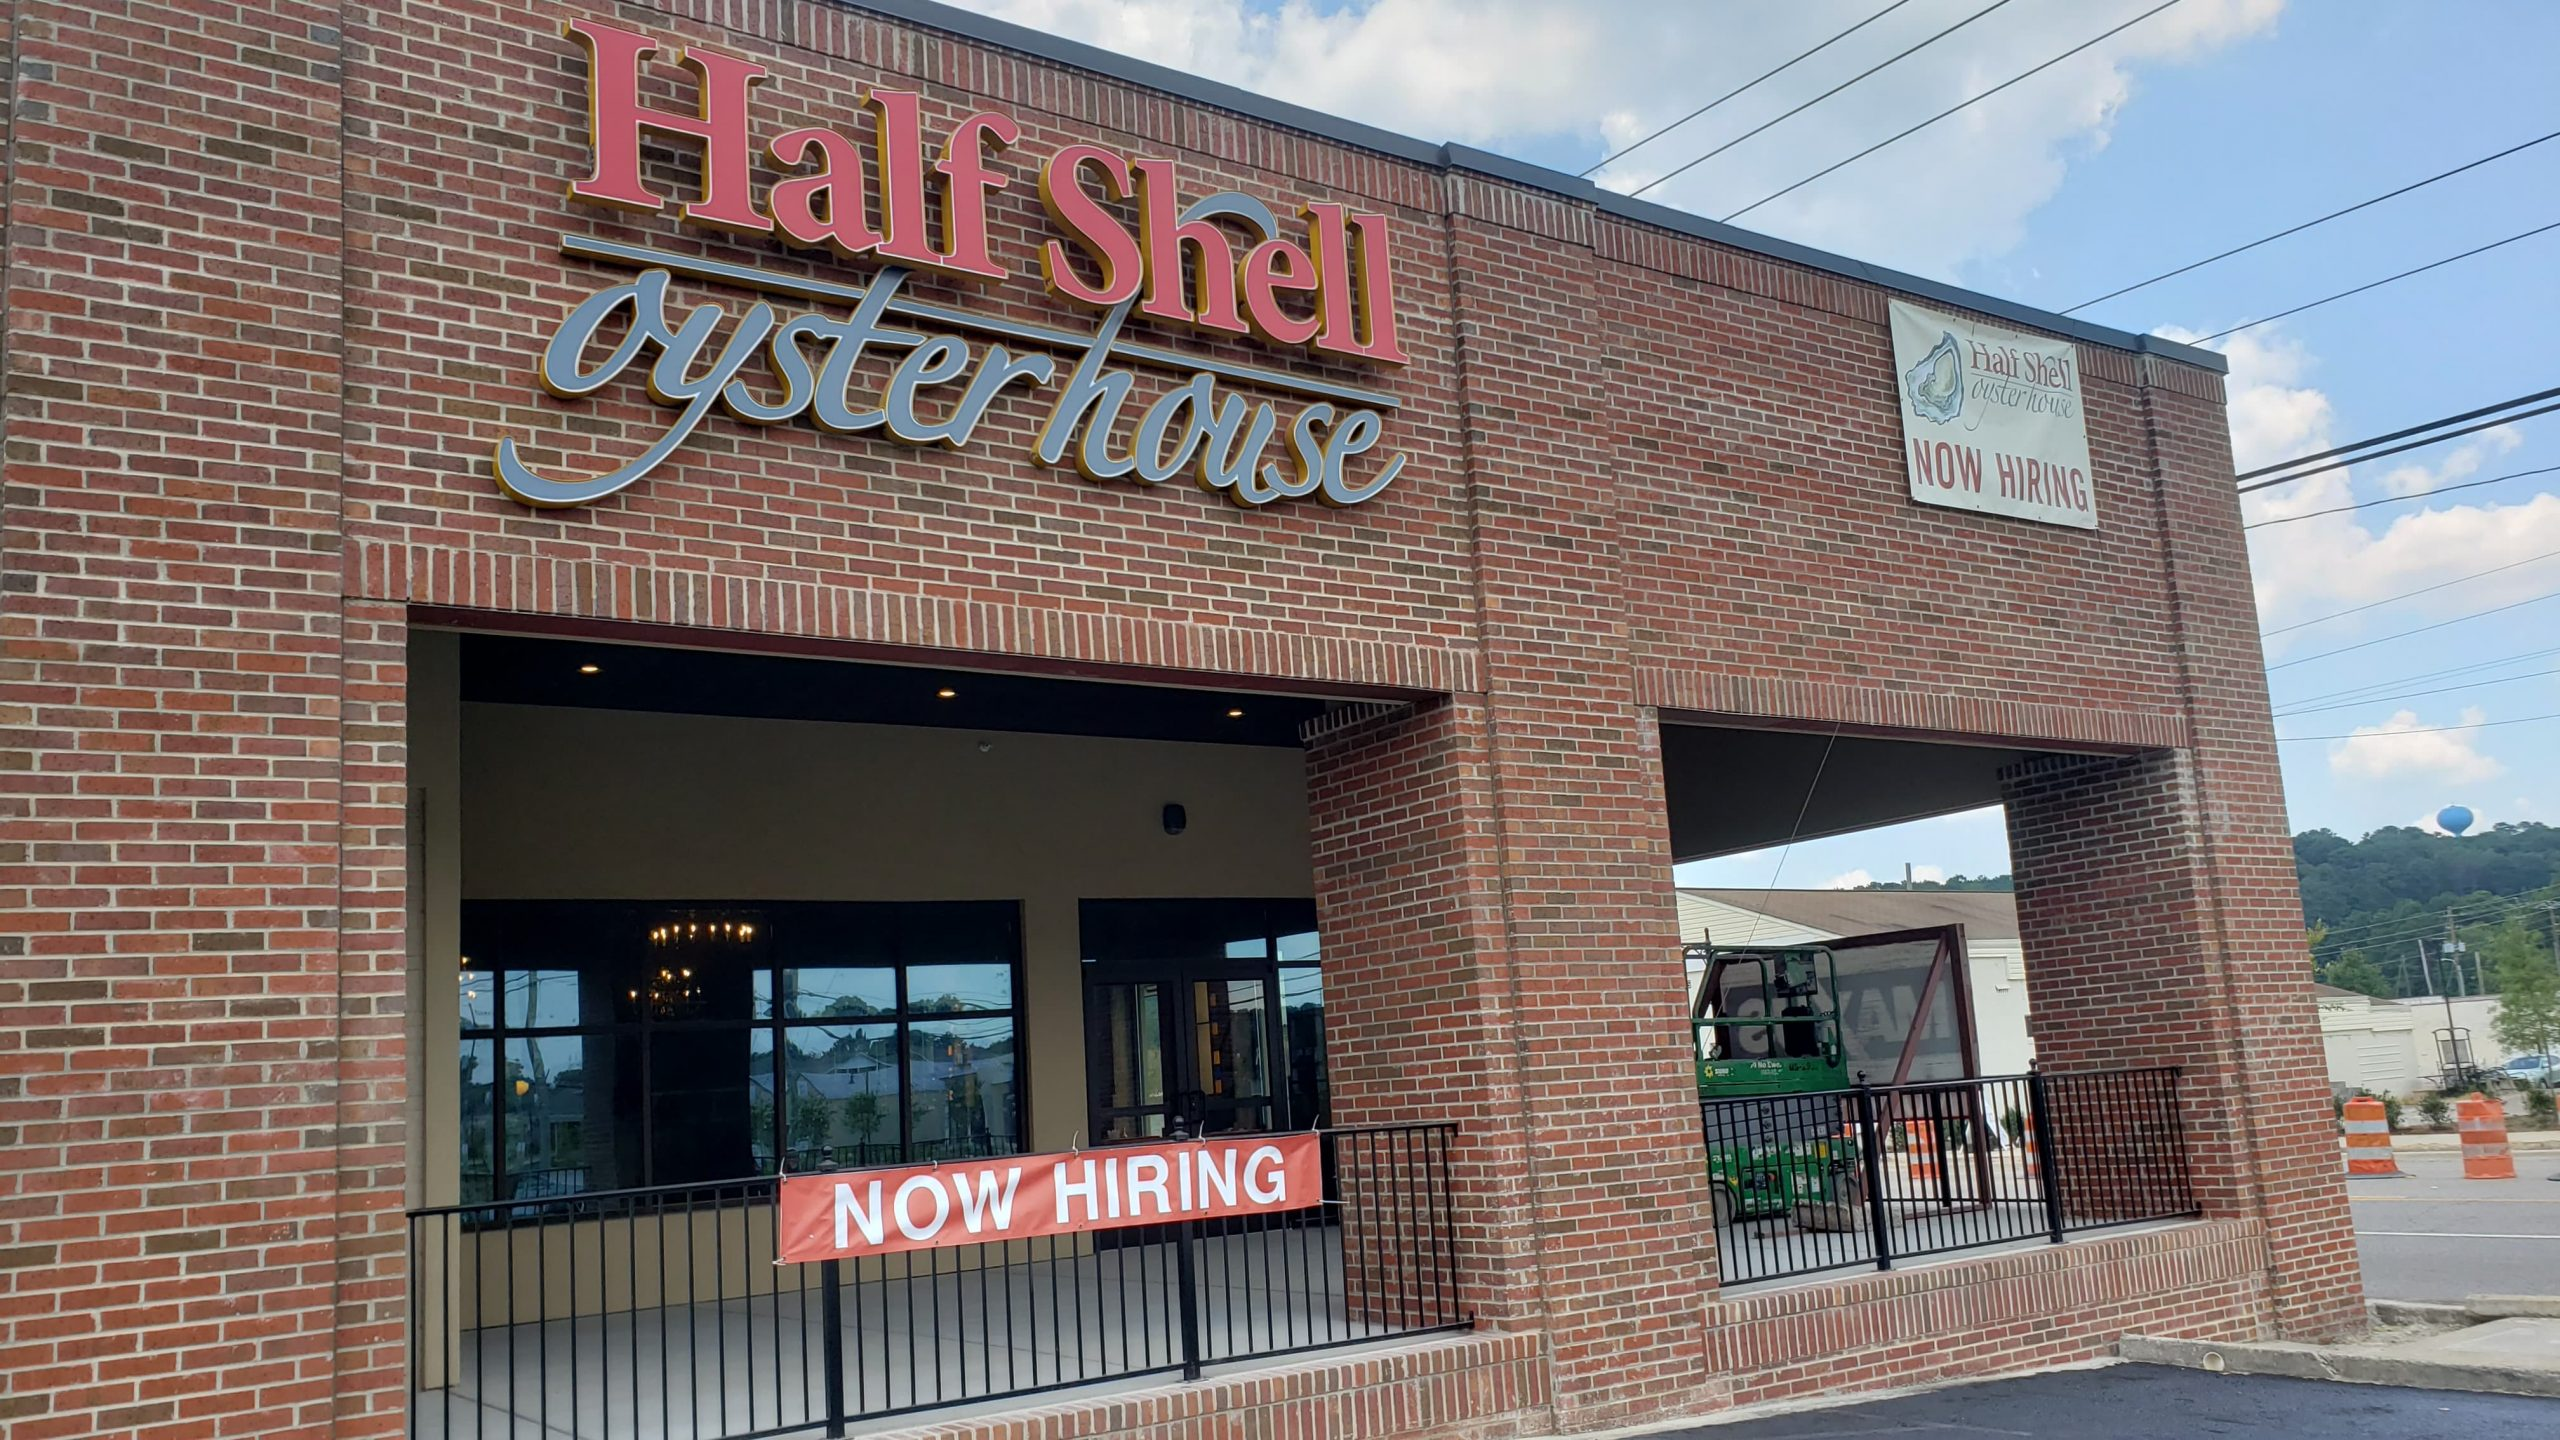 Half Shell Oyster House announces $12 minimum wage